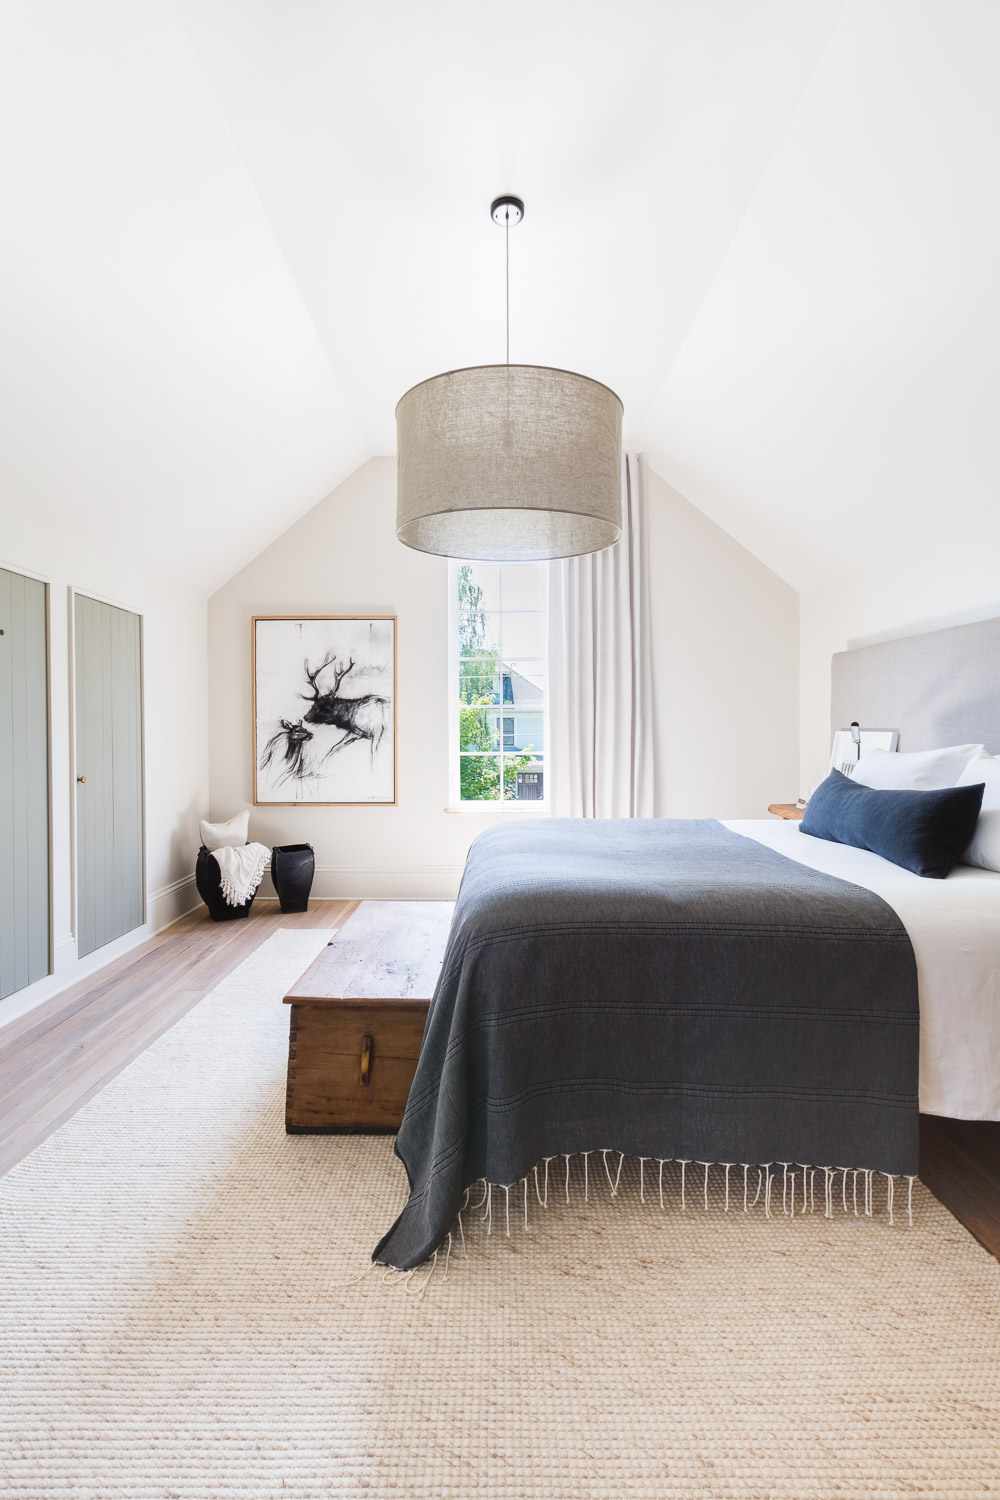 This rustic modern bedroom with vaulted ceilings and a bench at the end of the bed is cozy and inviting. For more ideas on how to use benches in your home, head to this blog post!